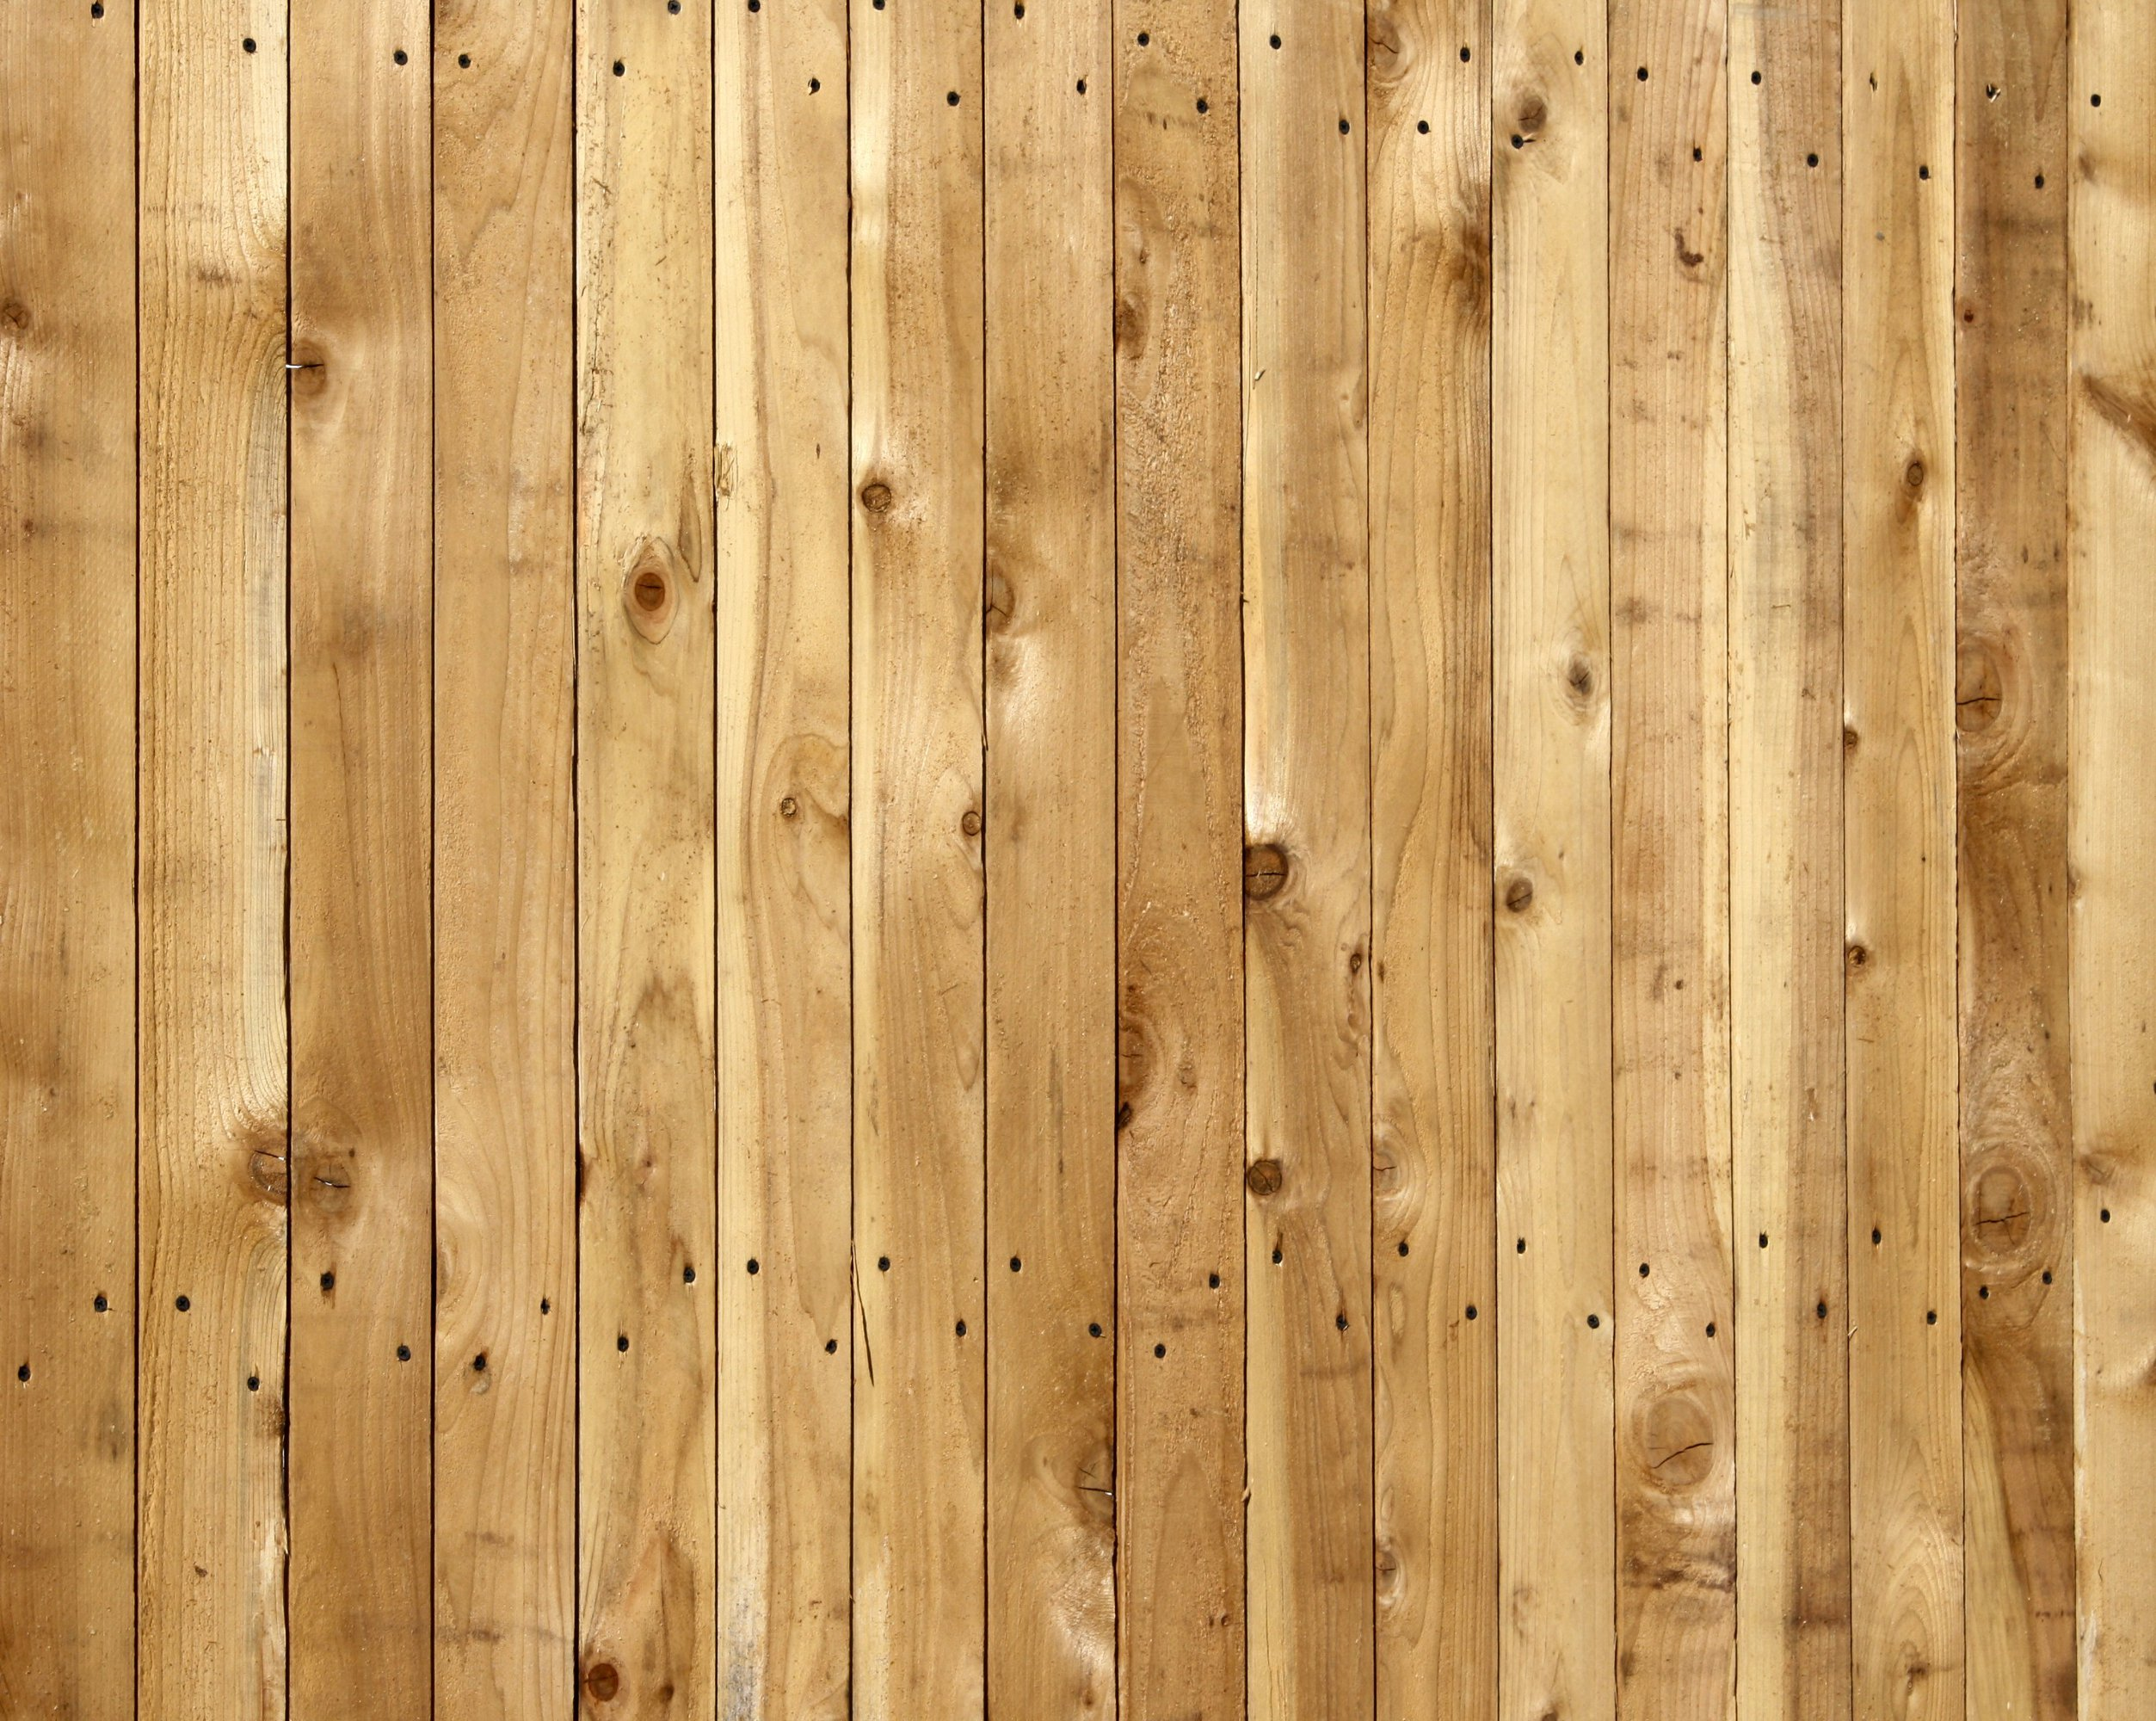 file wooden fence closeup jpg wikimedia commons